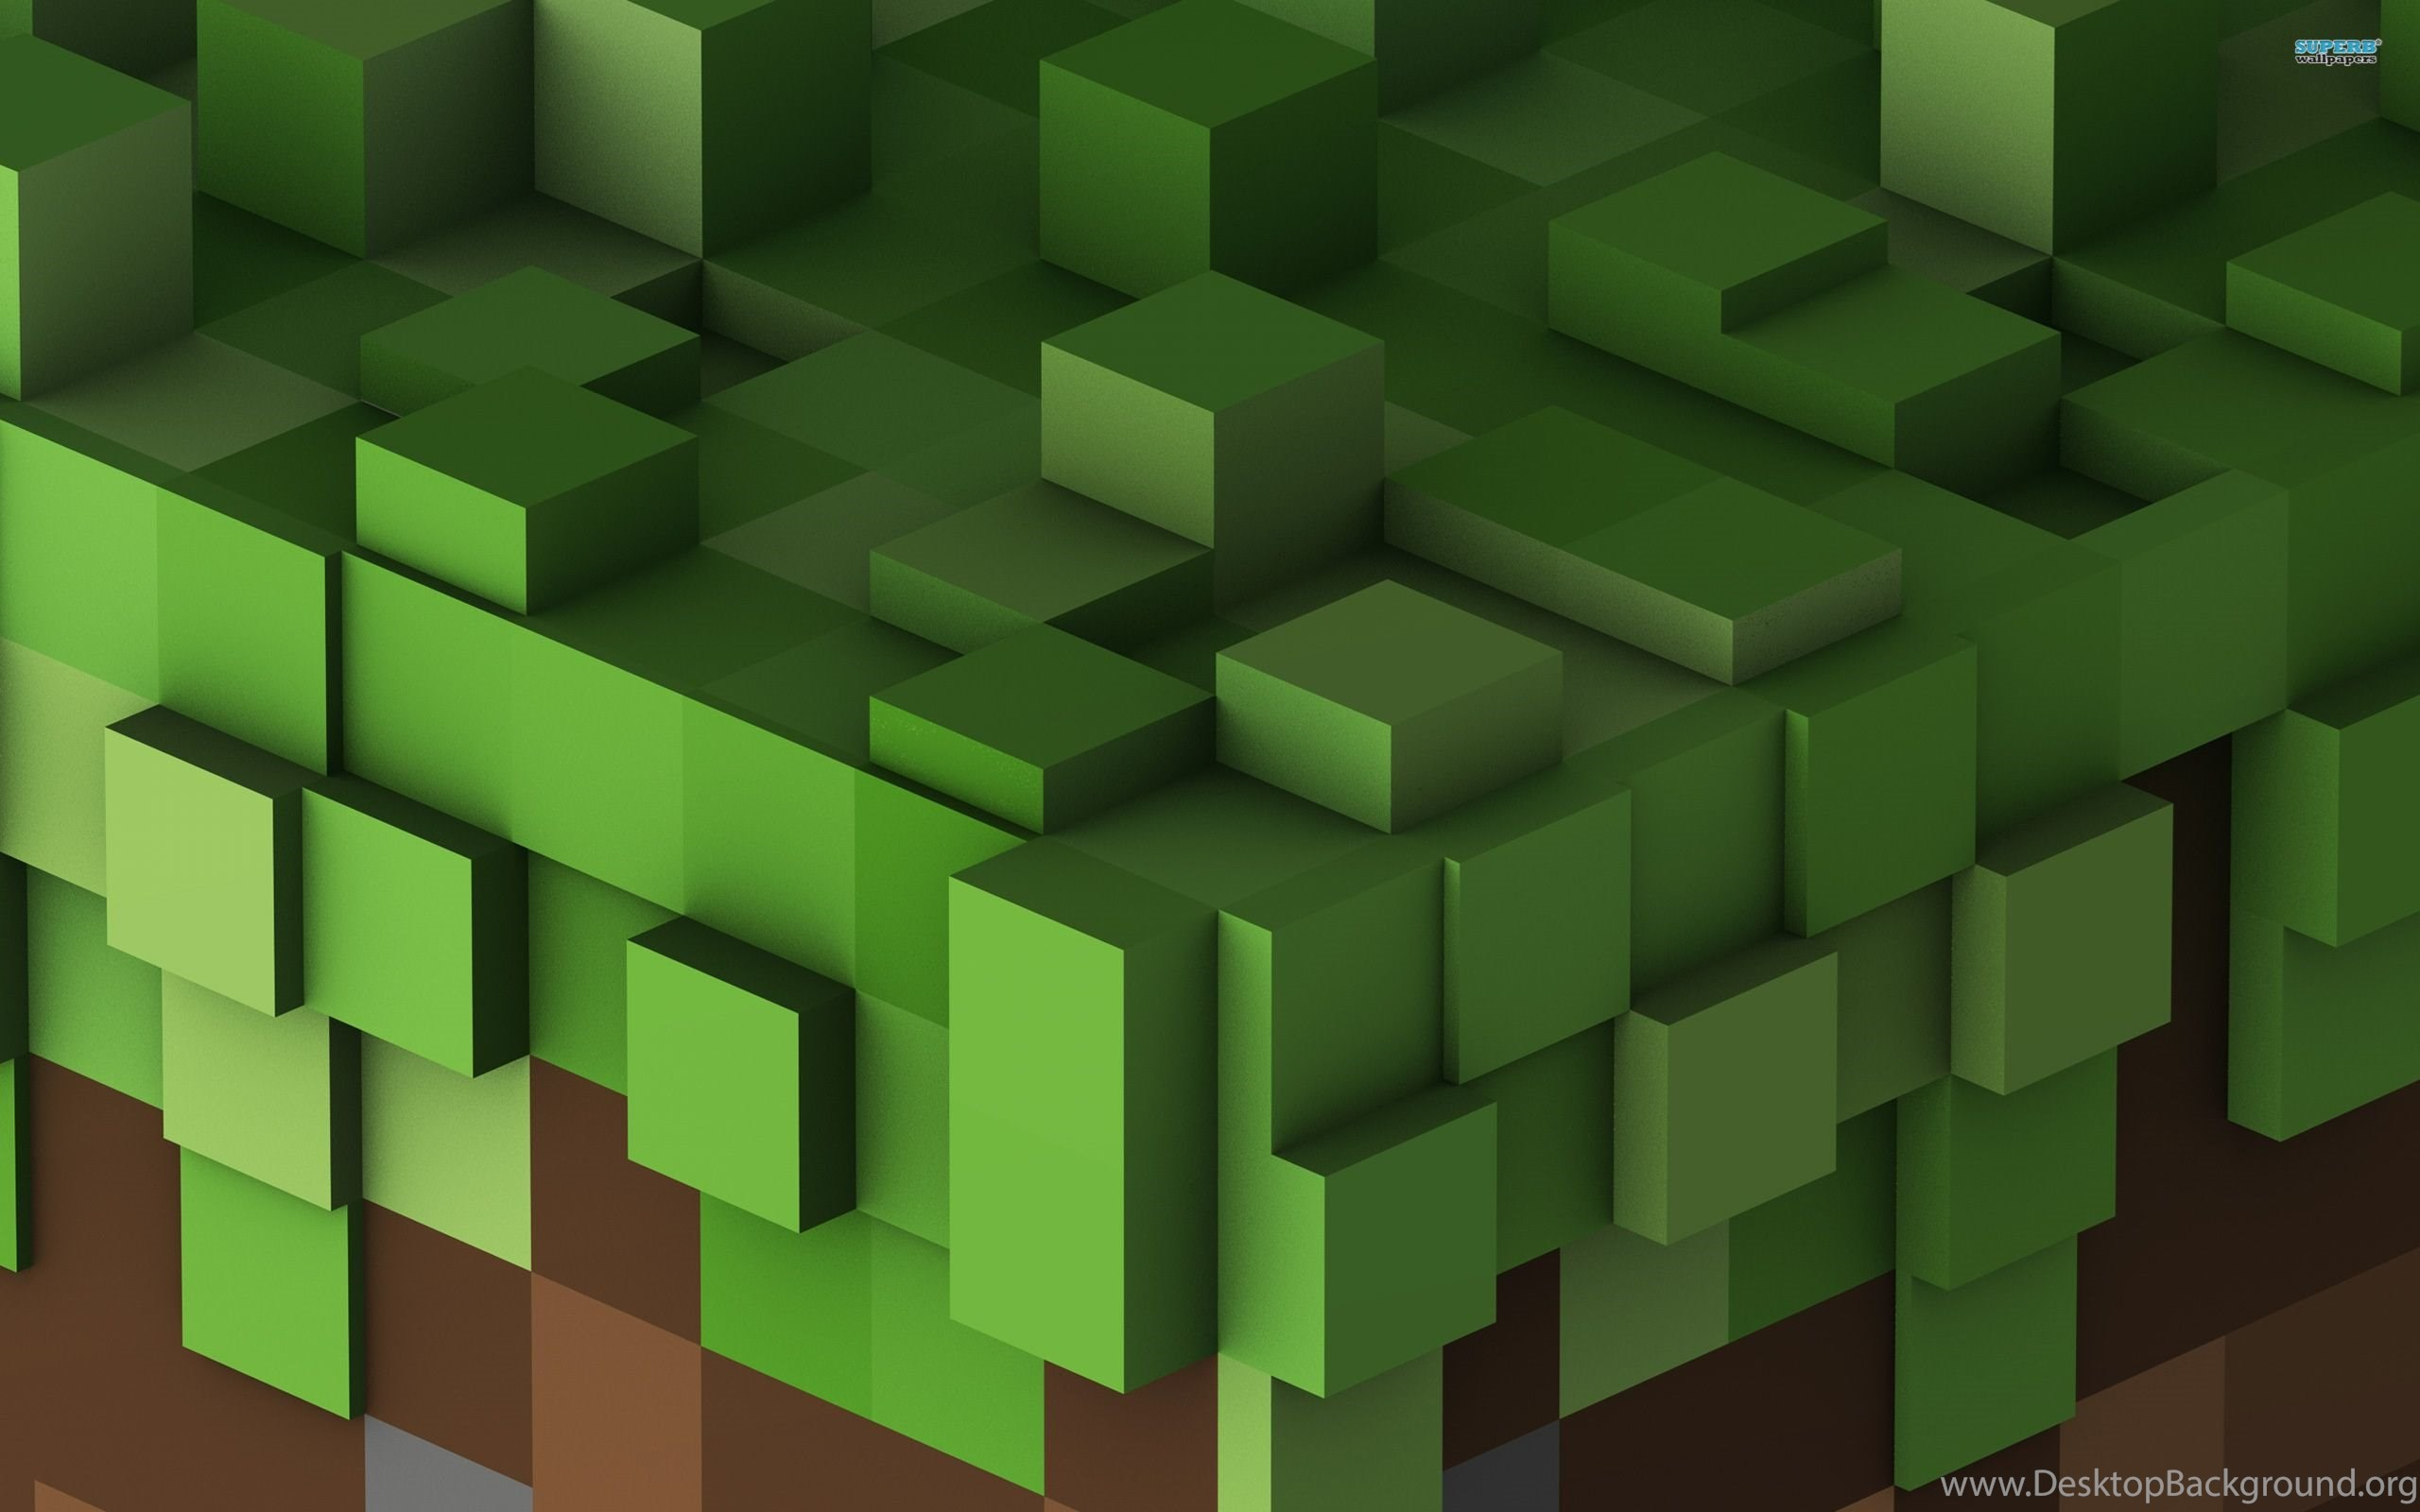 Great Wallpaper Minecraft Colorful - 233_minecraft-wallpapers-hd-ipad_2560x1600_h  HD_439783.jpg